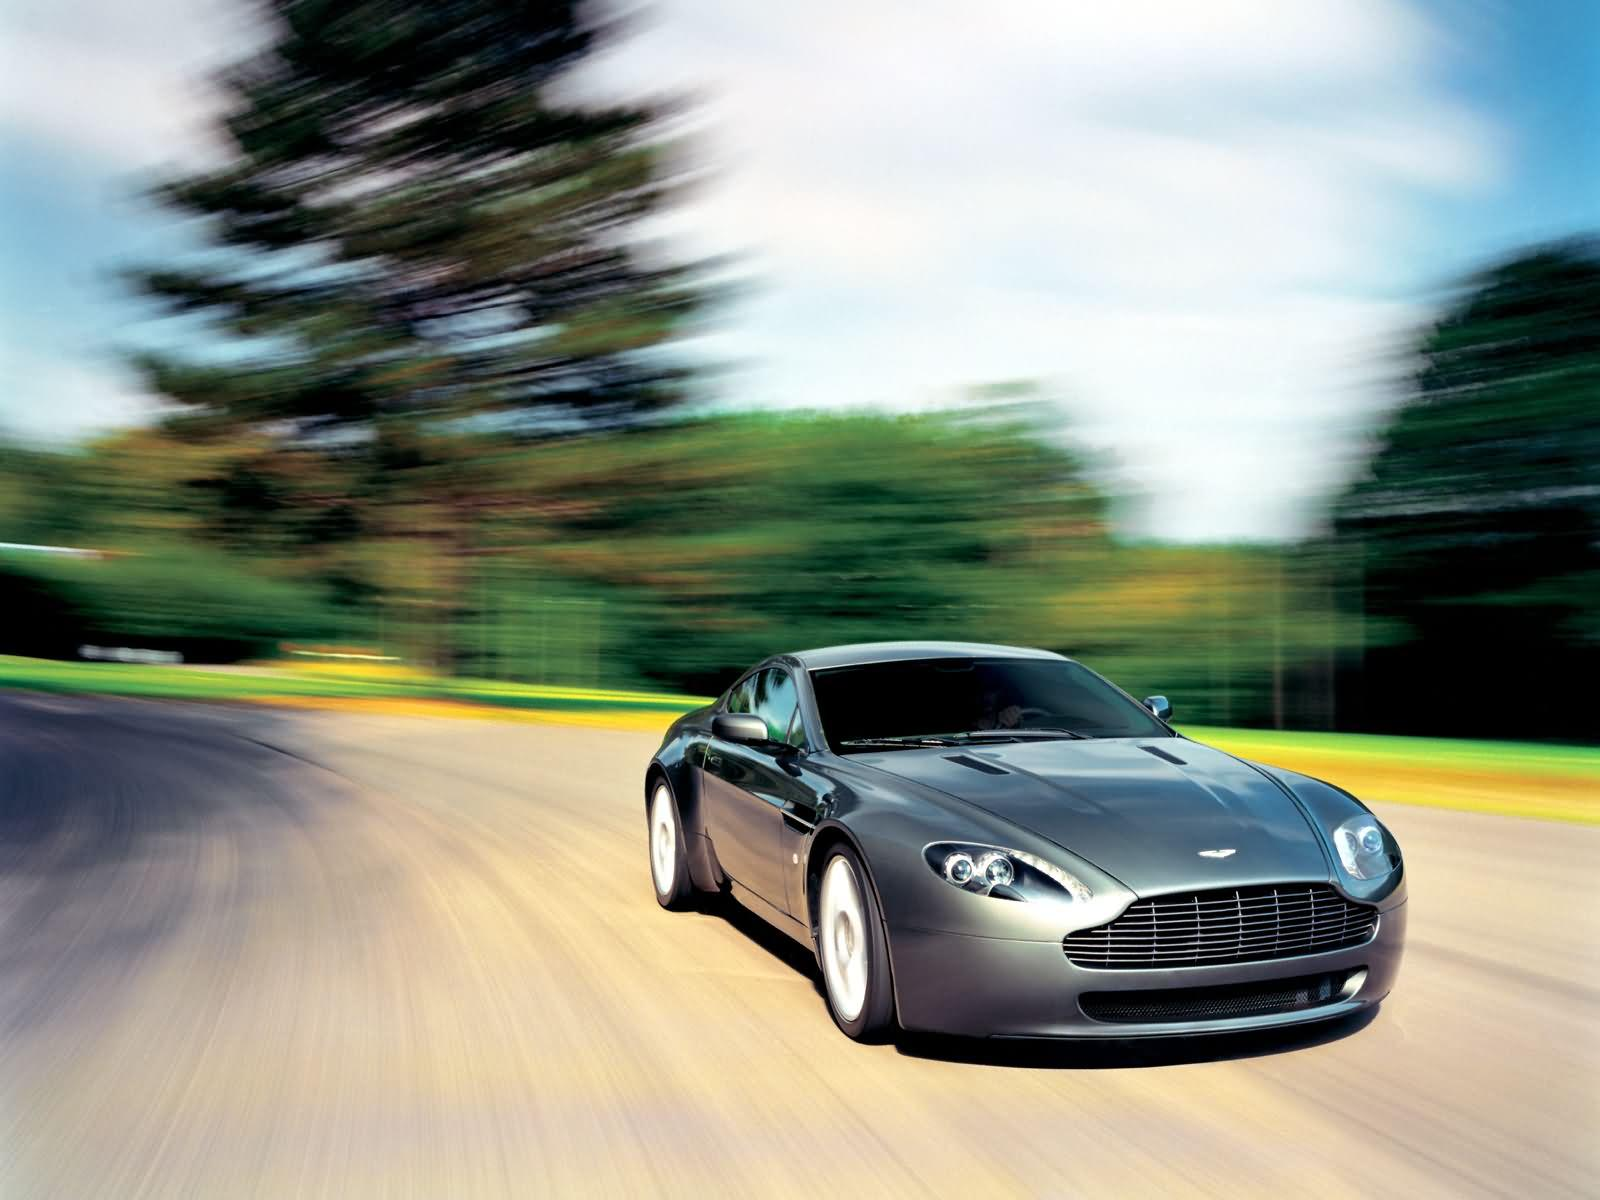 Aston Martin V8 Vantage Wallpapers HD